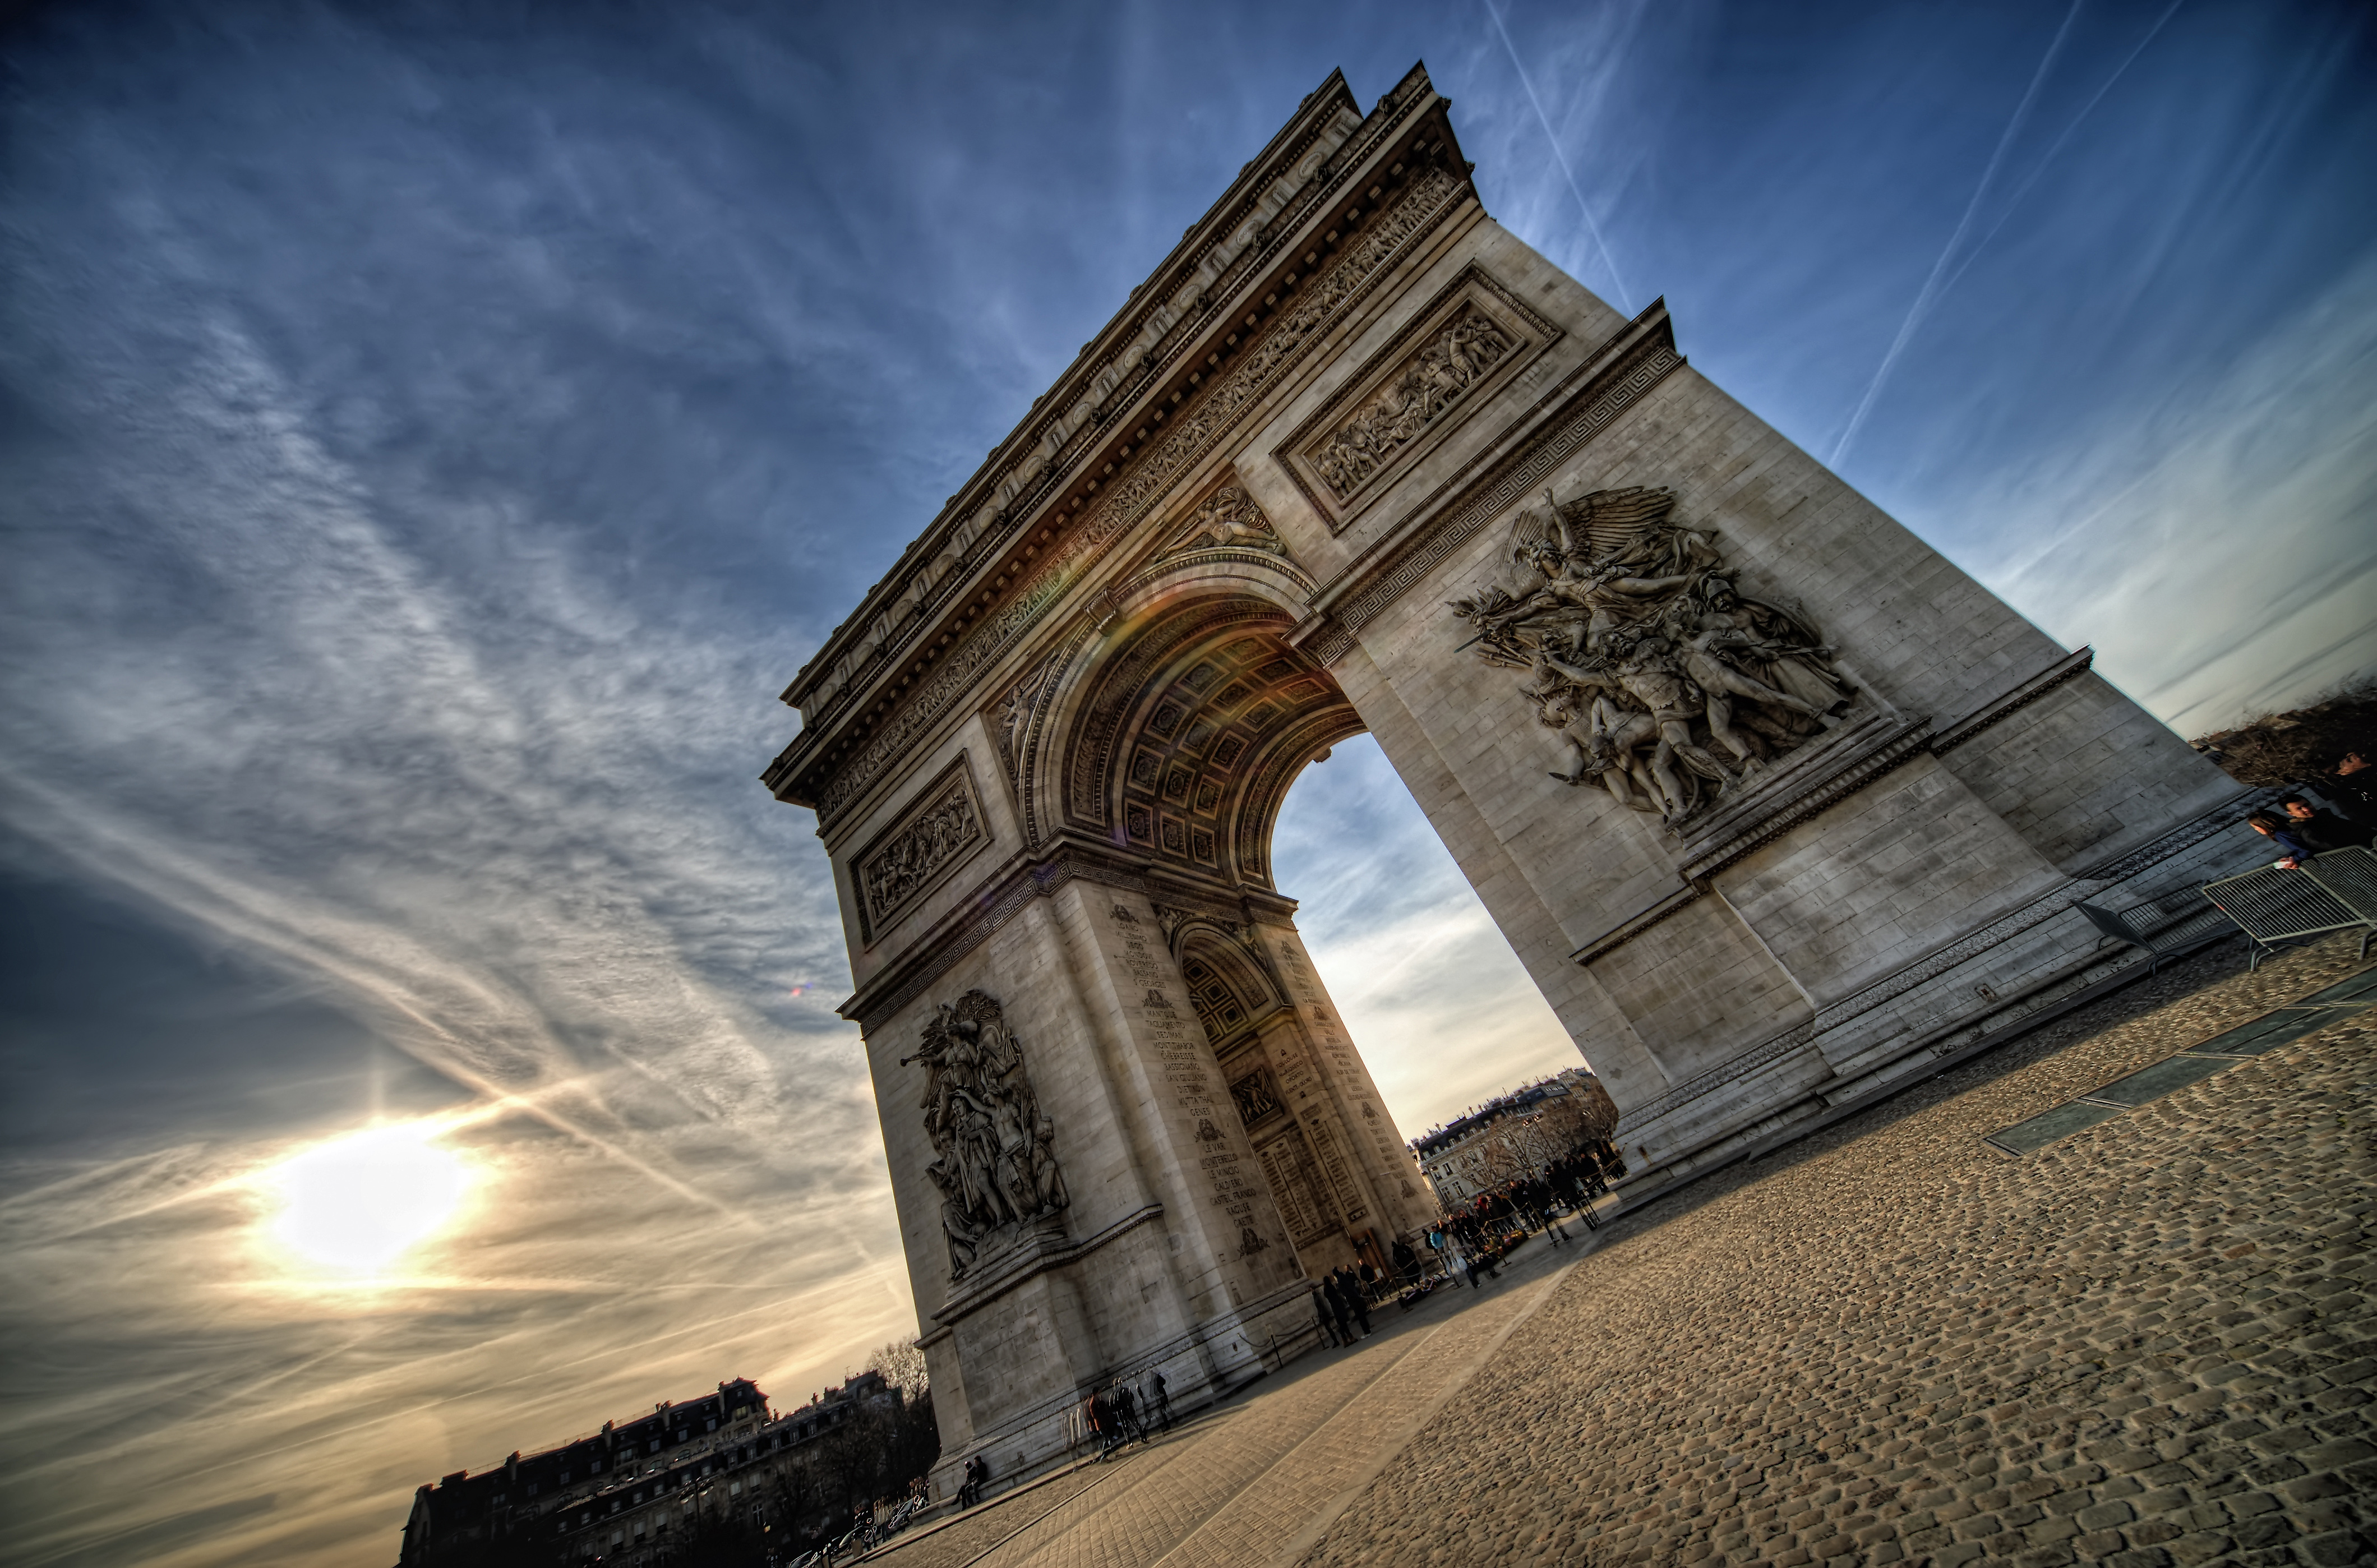 Arc de Triomphe%252C Paris A.Gelot %252F CRT Paris Ile-de-France